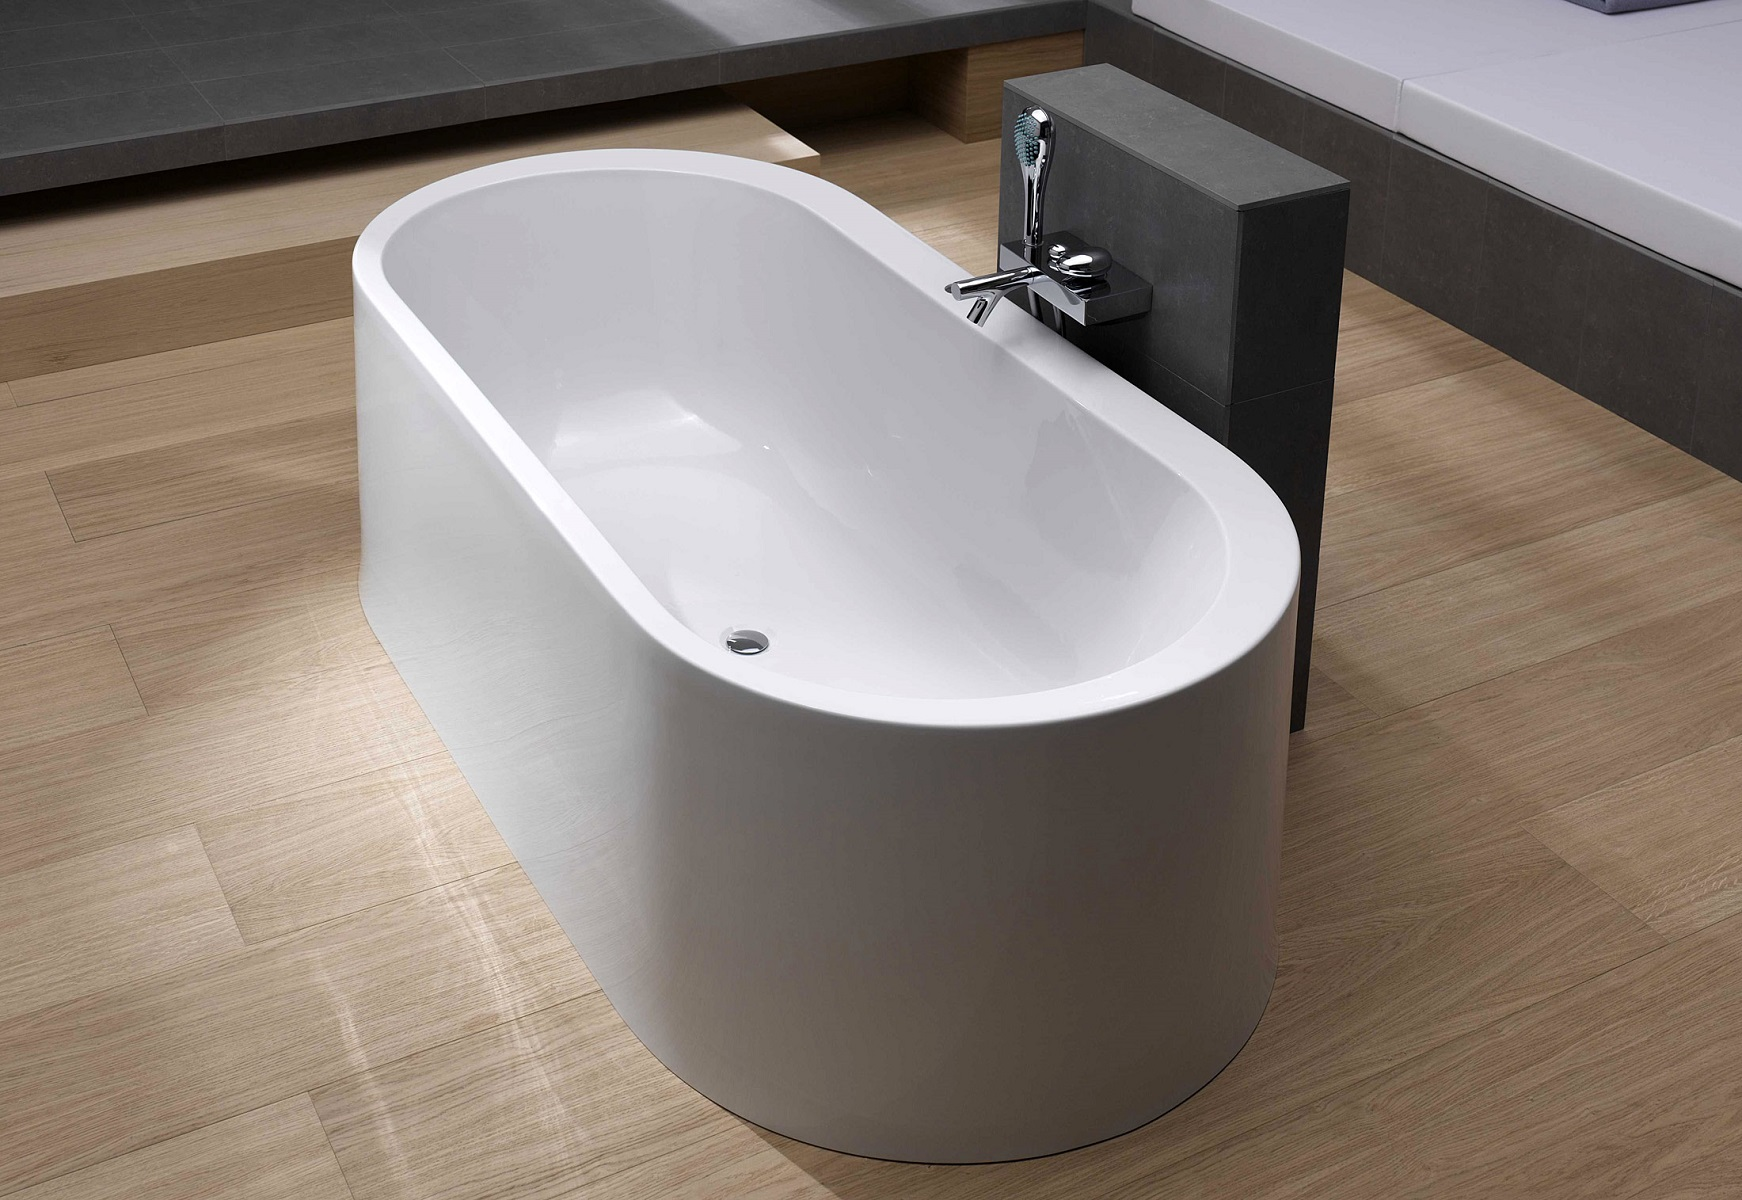 Acrylic Bathtub – The Best Value for Price and Quality